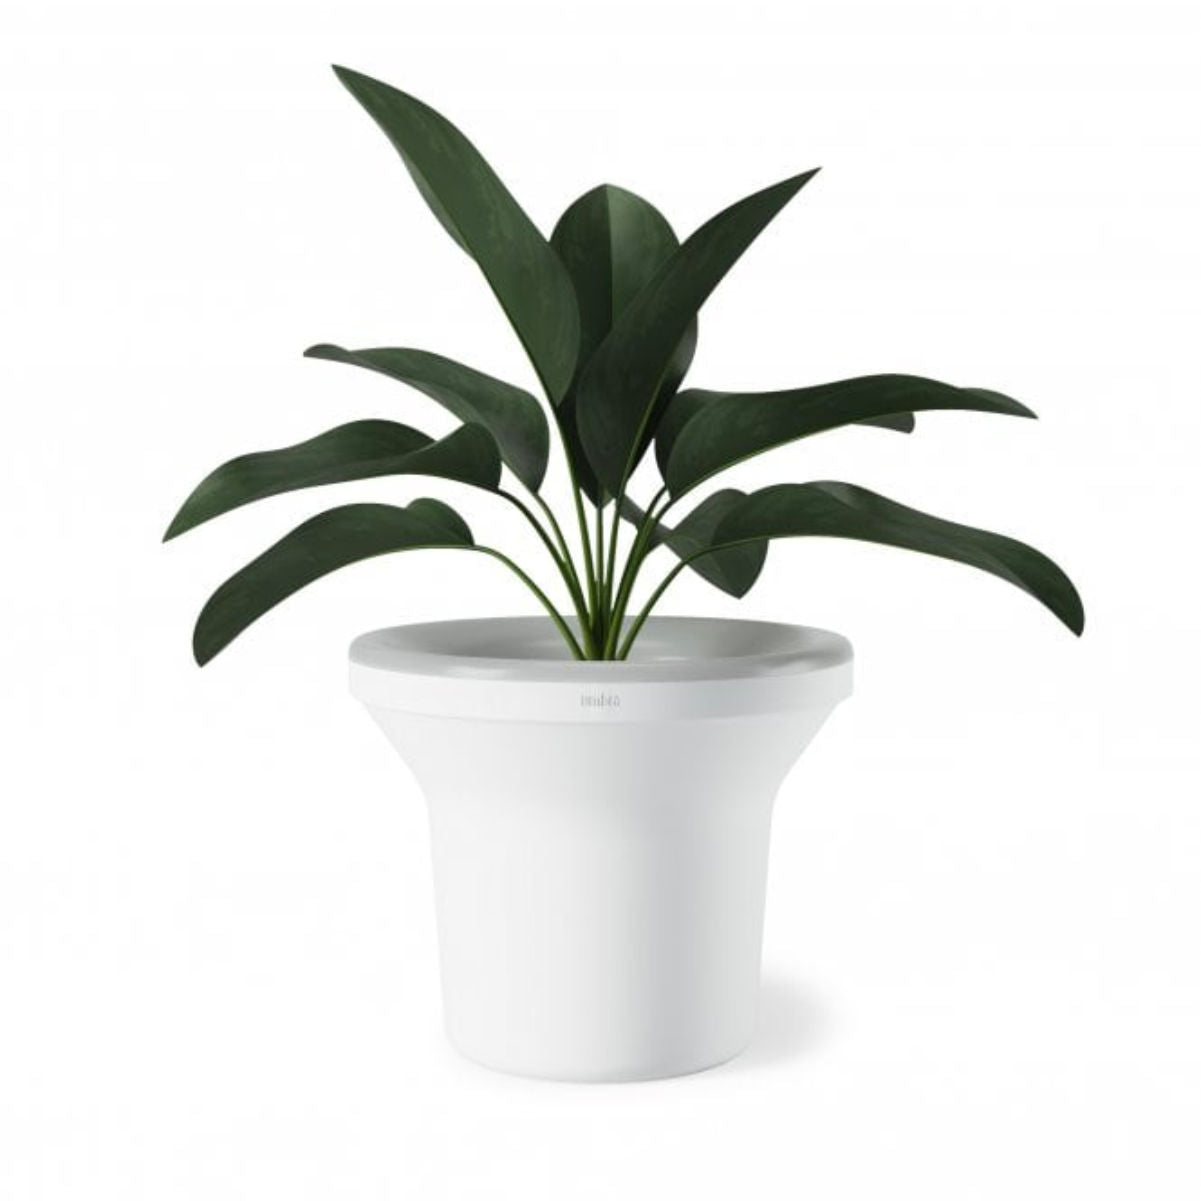 Umbra Ora Planter with LED Light